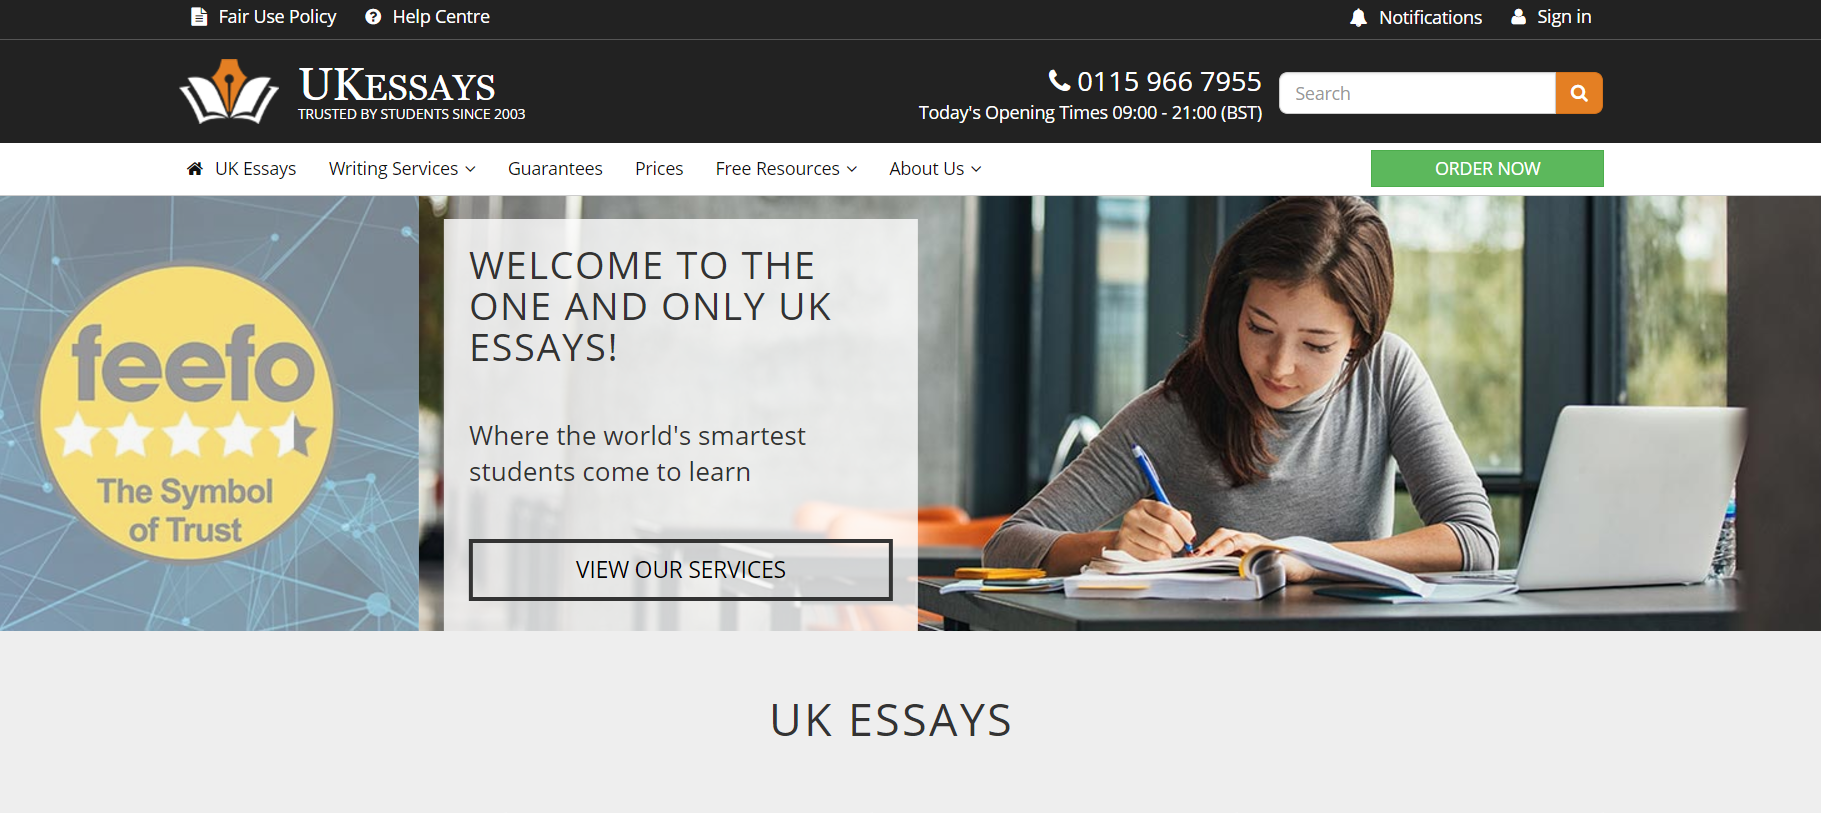 Ukessayscom Review Of Essay Writings Services At Ukessays Ukessays Com Rating Process Essay Thesis Statement also Purpose Of Thesis Statement In An Essay  Grant Writing Services Professional